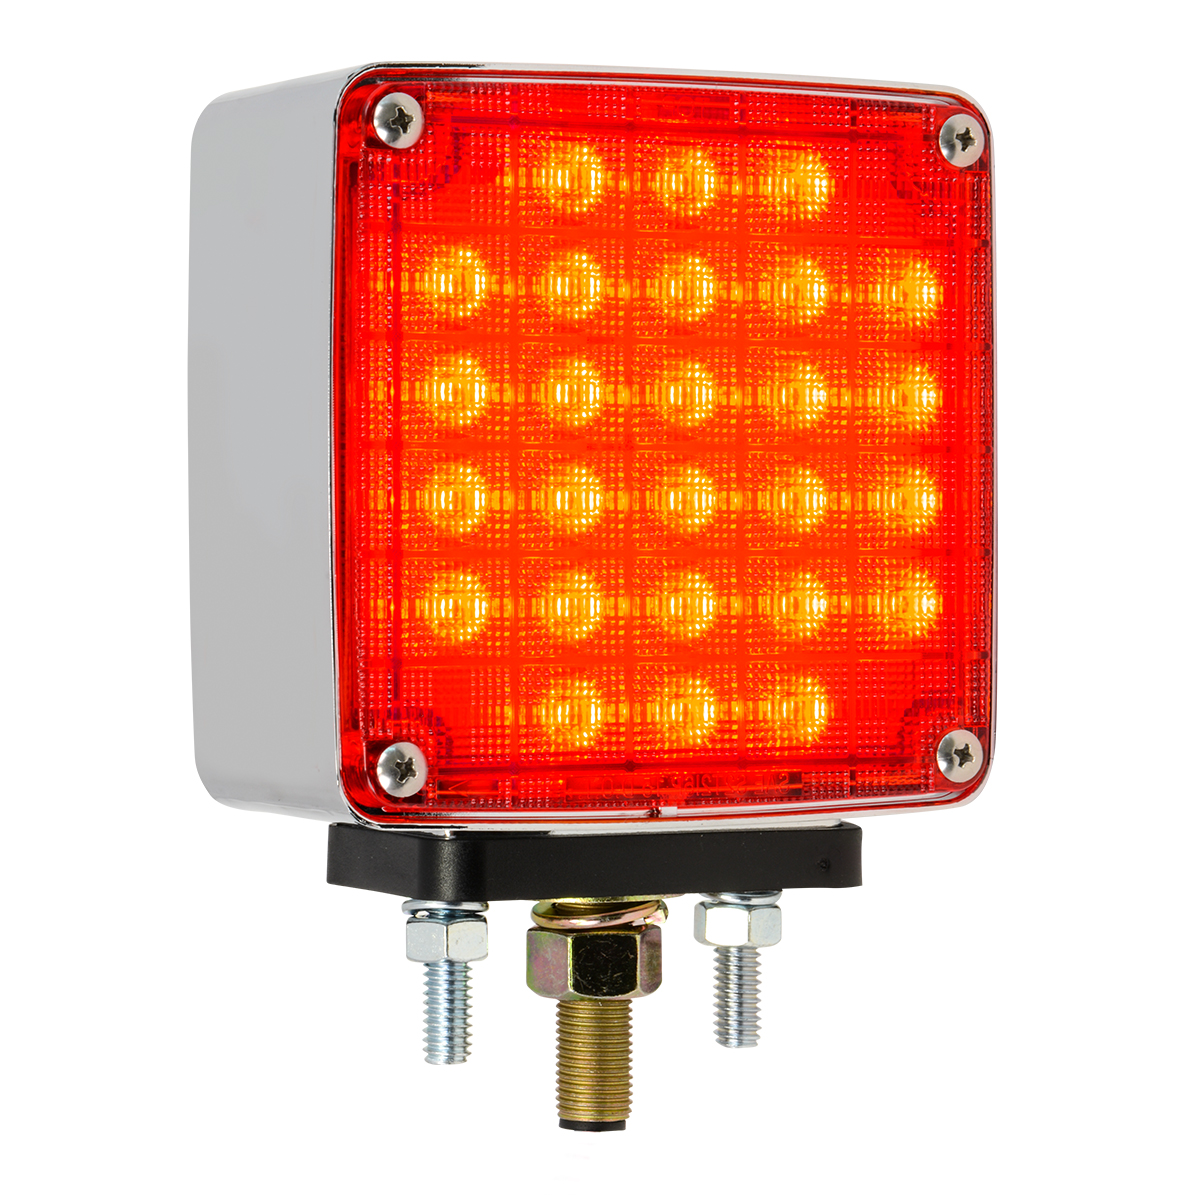 Square Double Face Smart Dynamic LED Pedestal Light in Color Lens